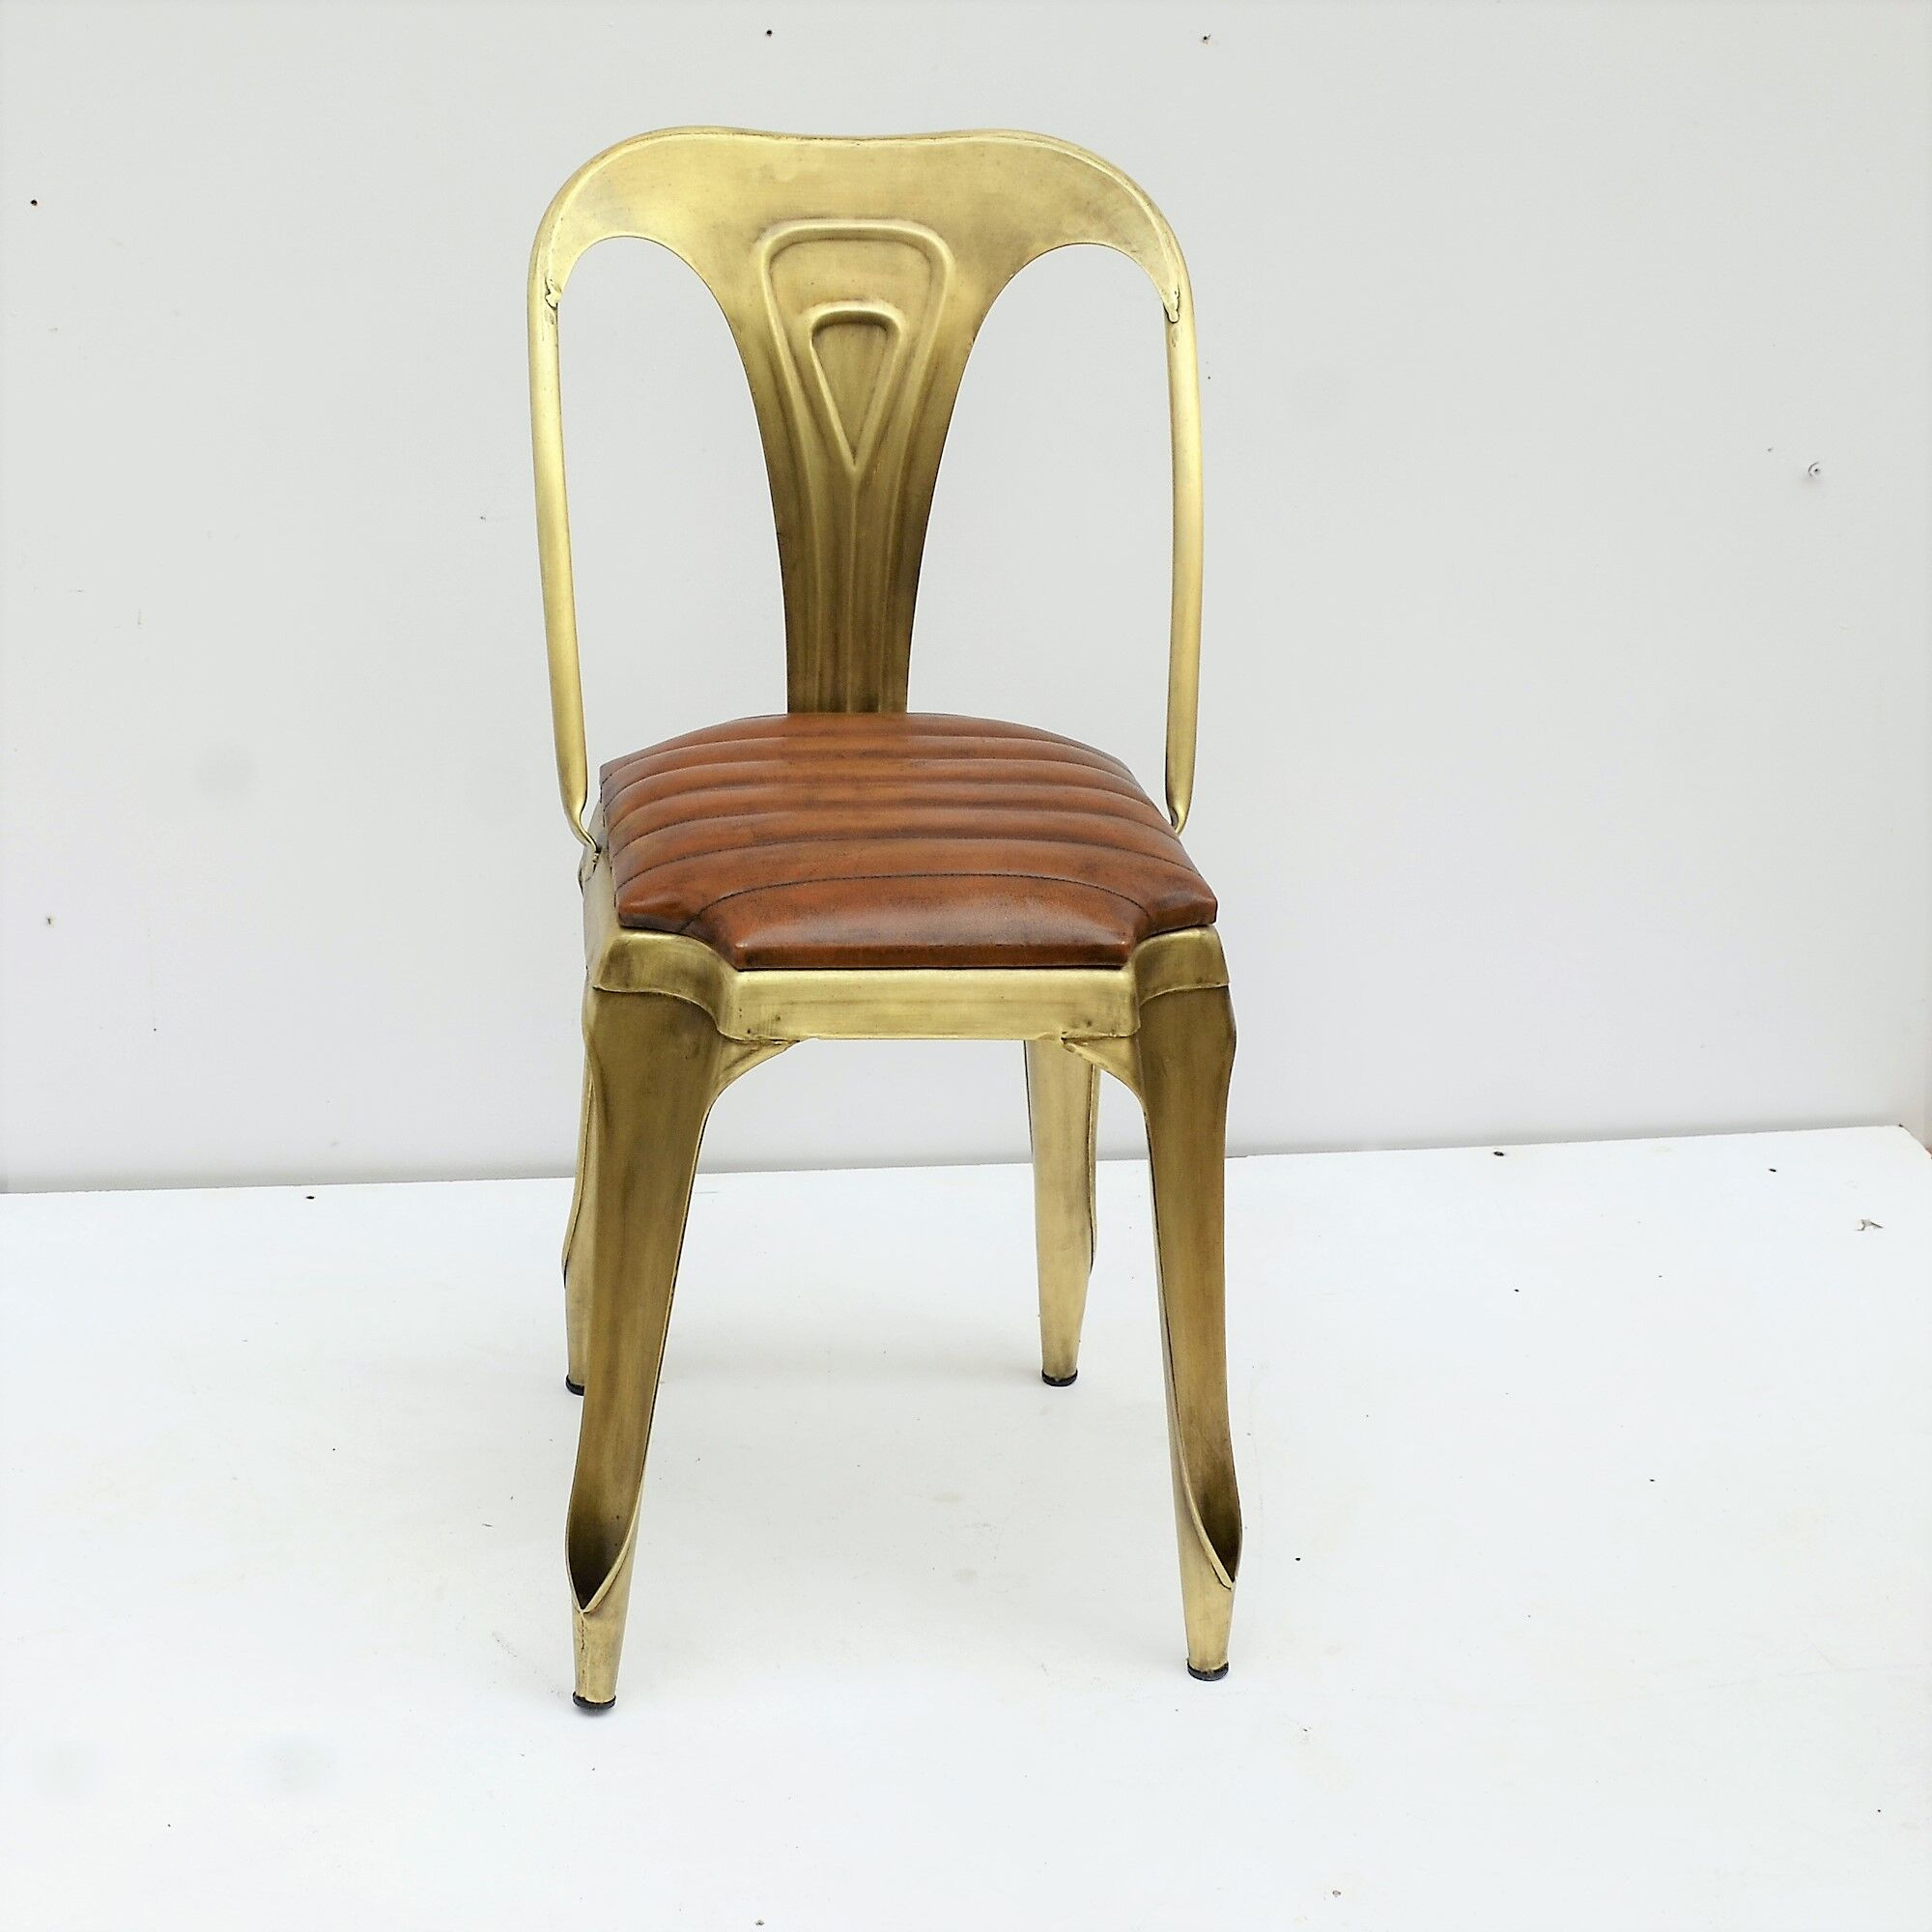 Wantage Upholstered Dining Chair